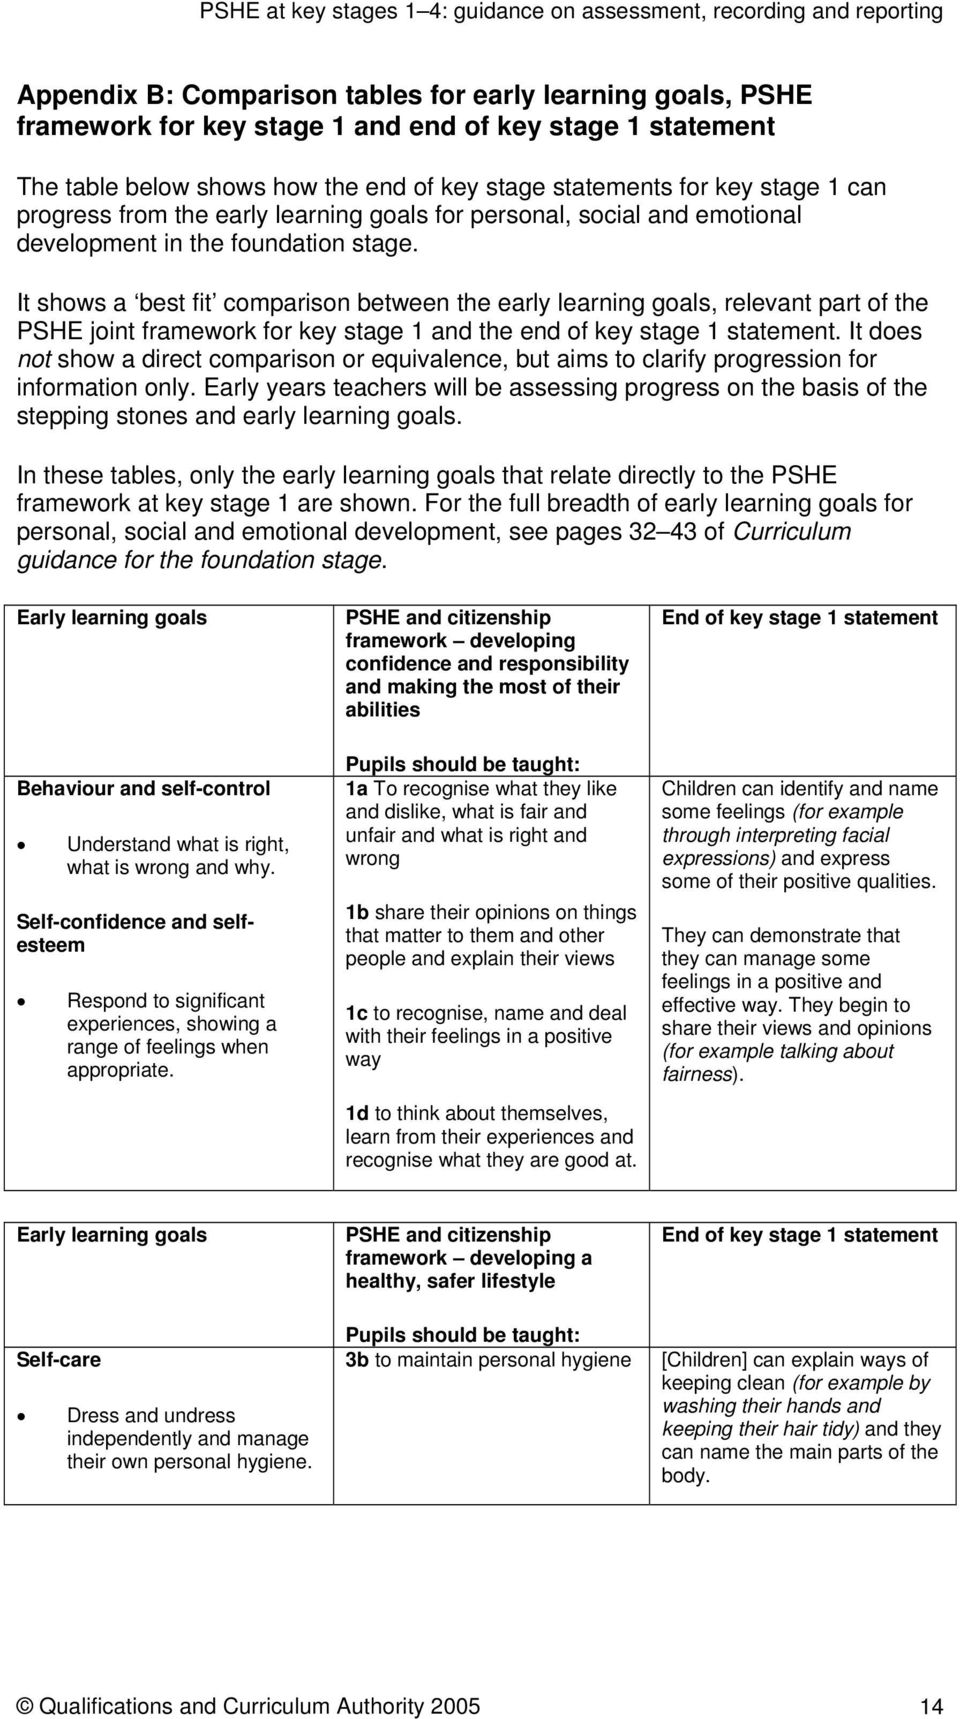 It shows a best fit comparison between the early learning goals, relevant part of the PSHE joint framework for key stage 1 and the end of key stage 1 statement.